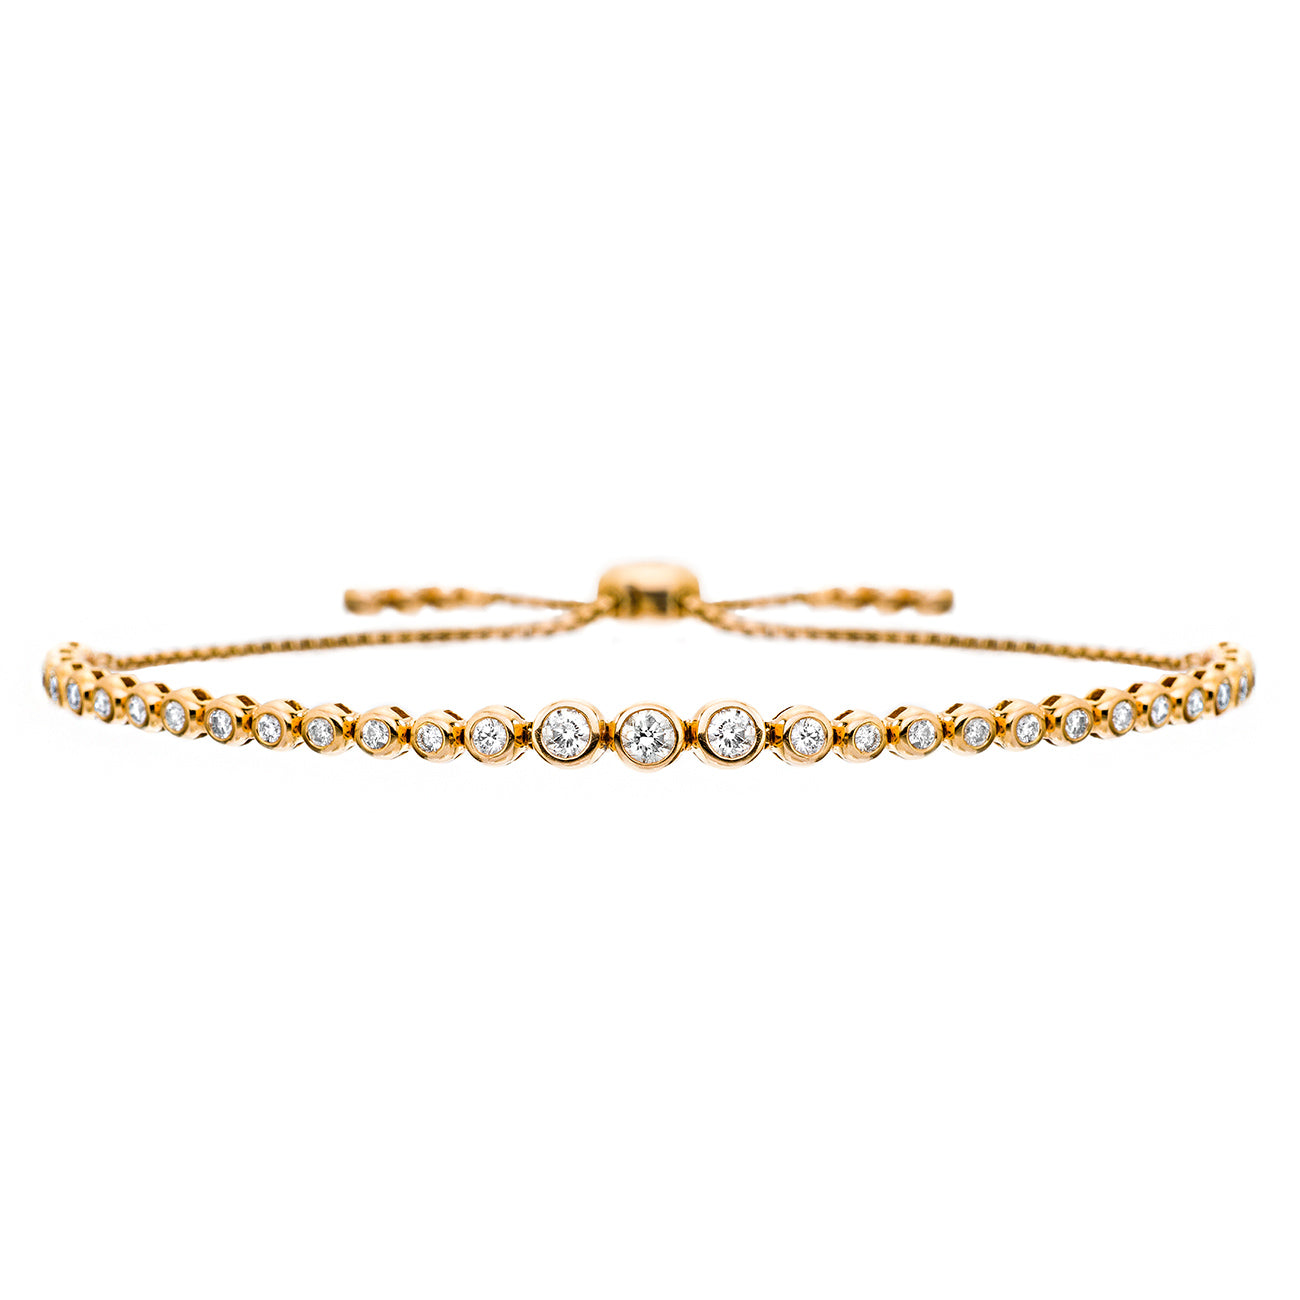 Sally Bolo Bracelet Rose Gold, Graduated